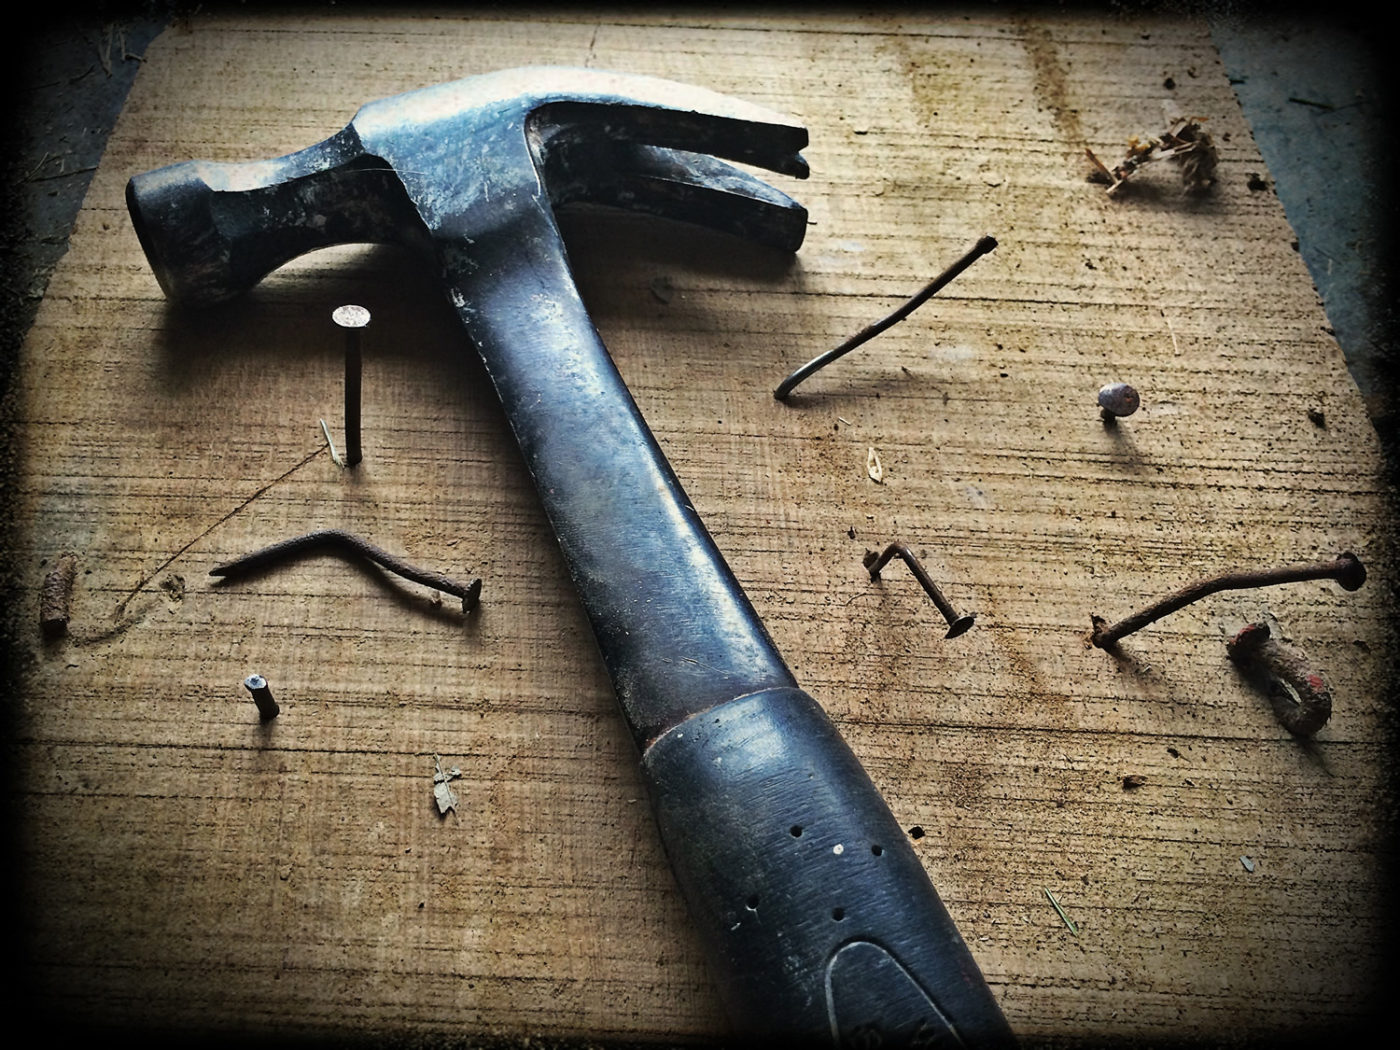 Construction claw hammer